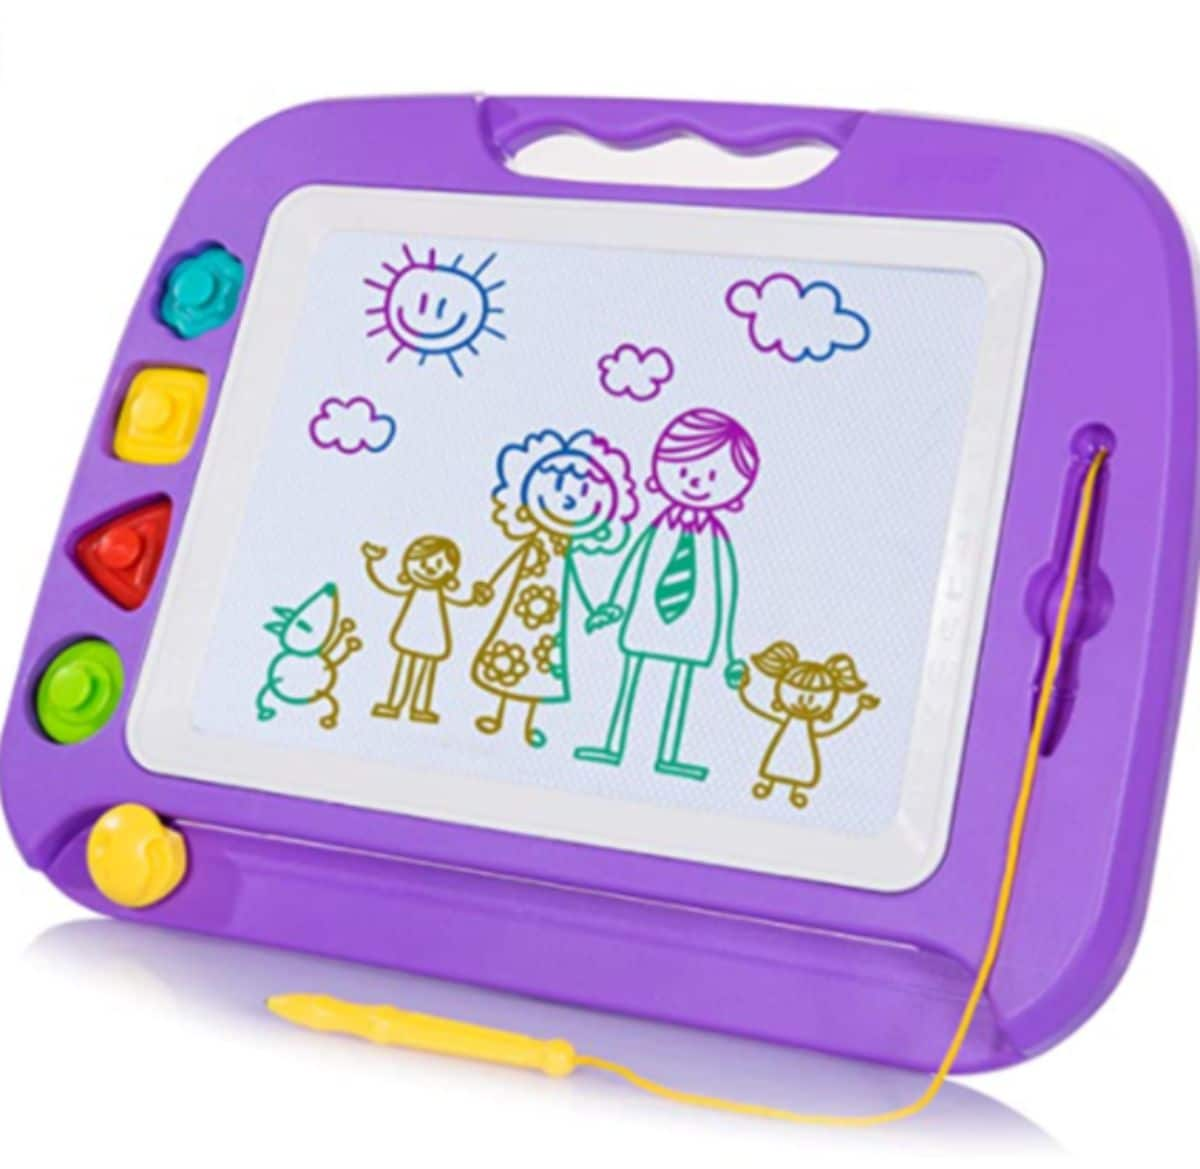 a purple magnetic doodle board. a drawing of a mom, dad, 2 kids and a dog on it